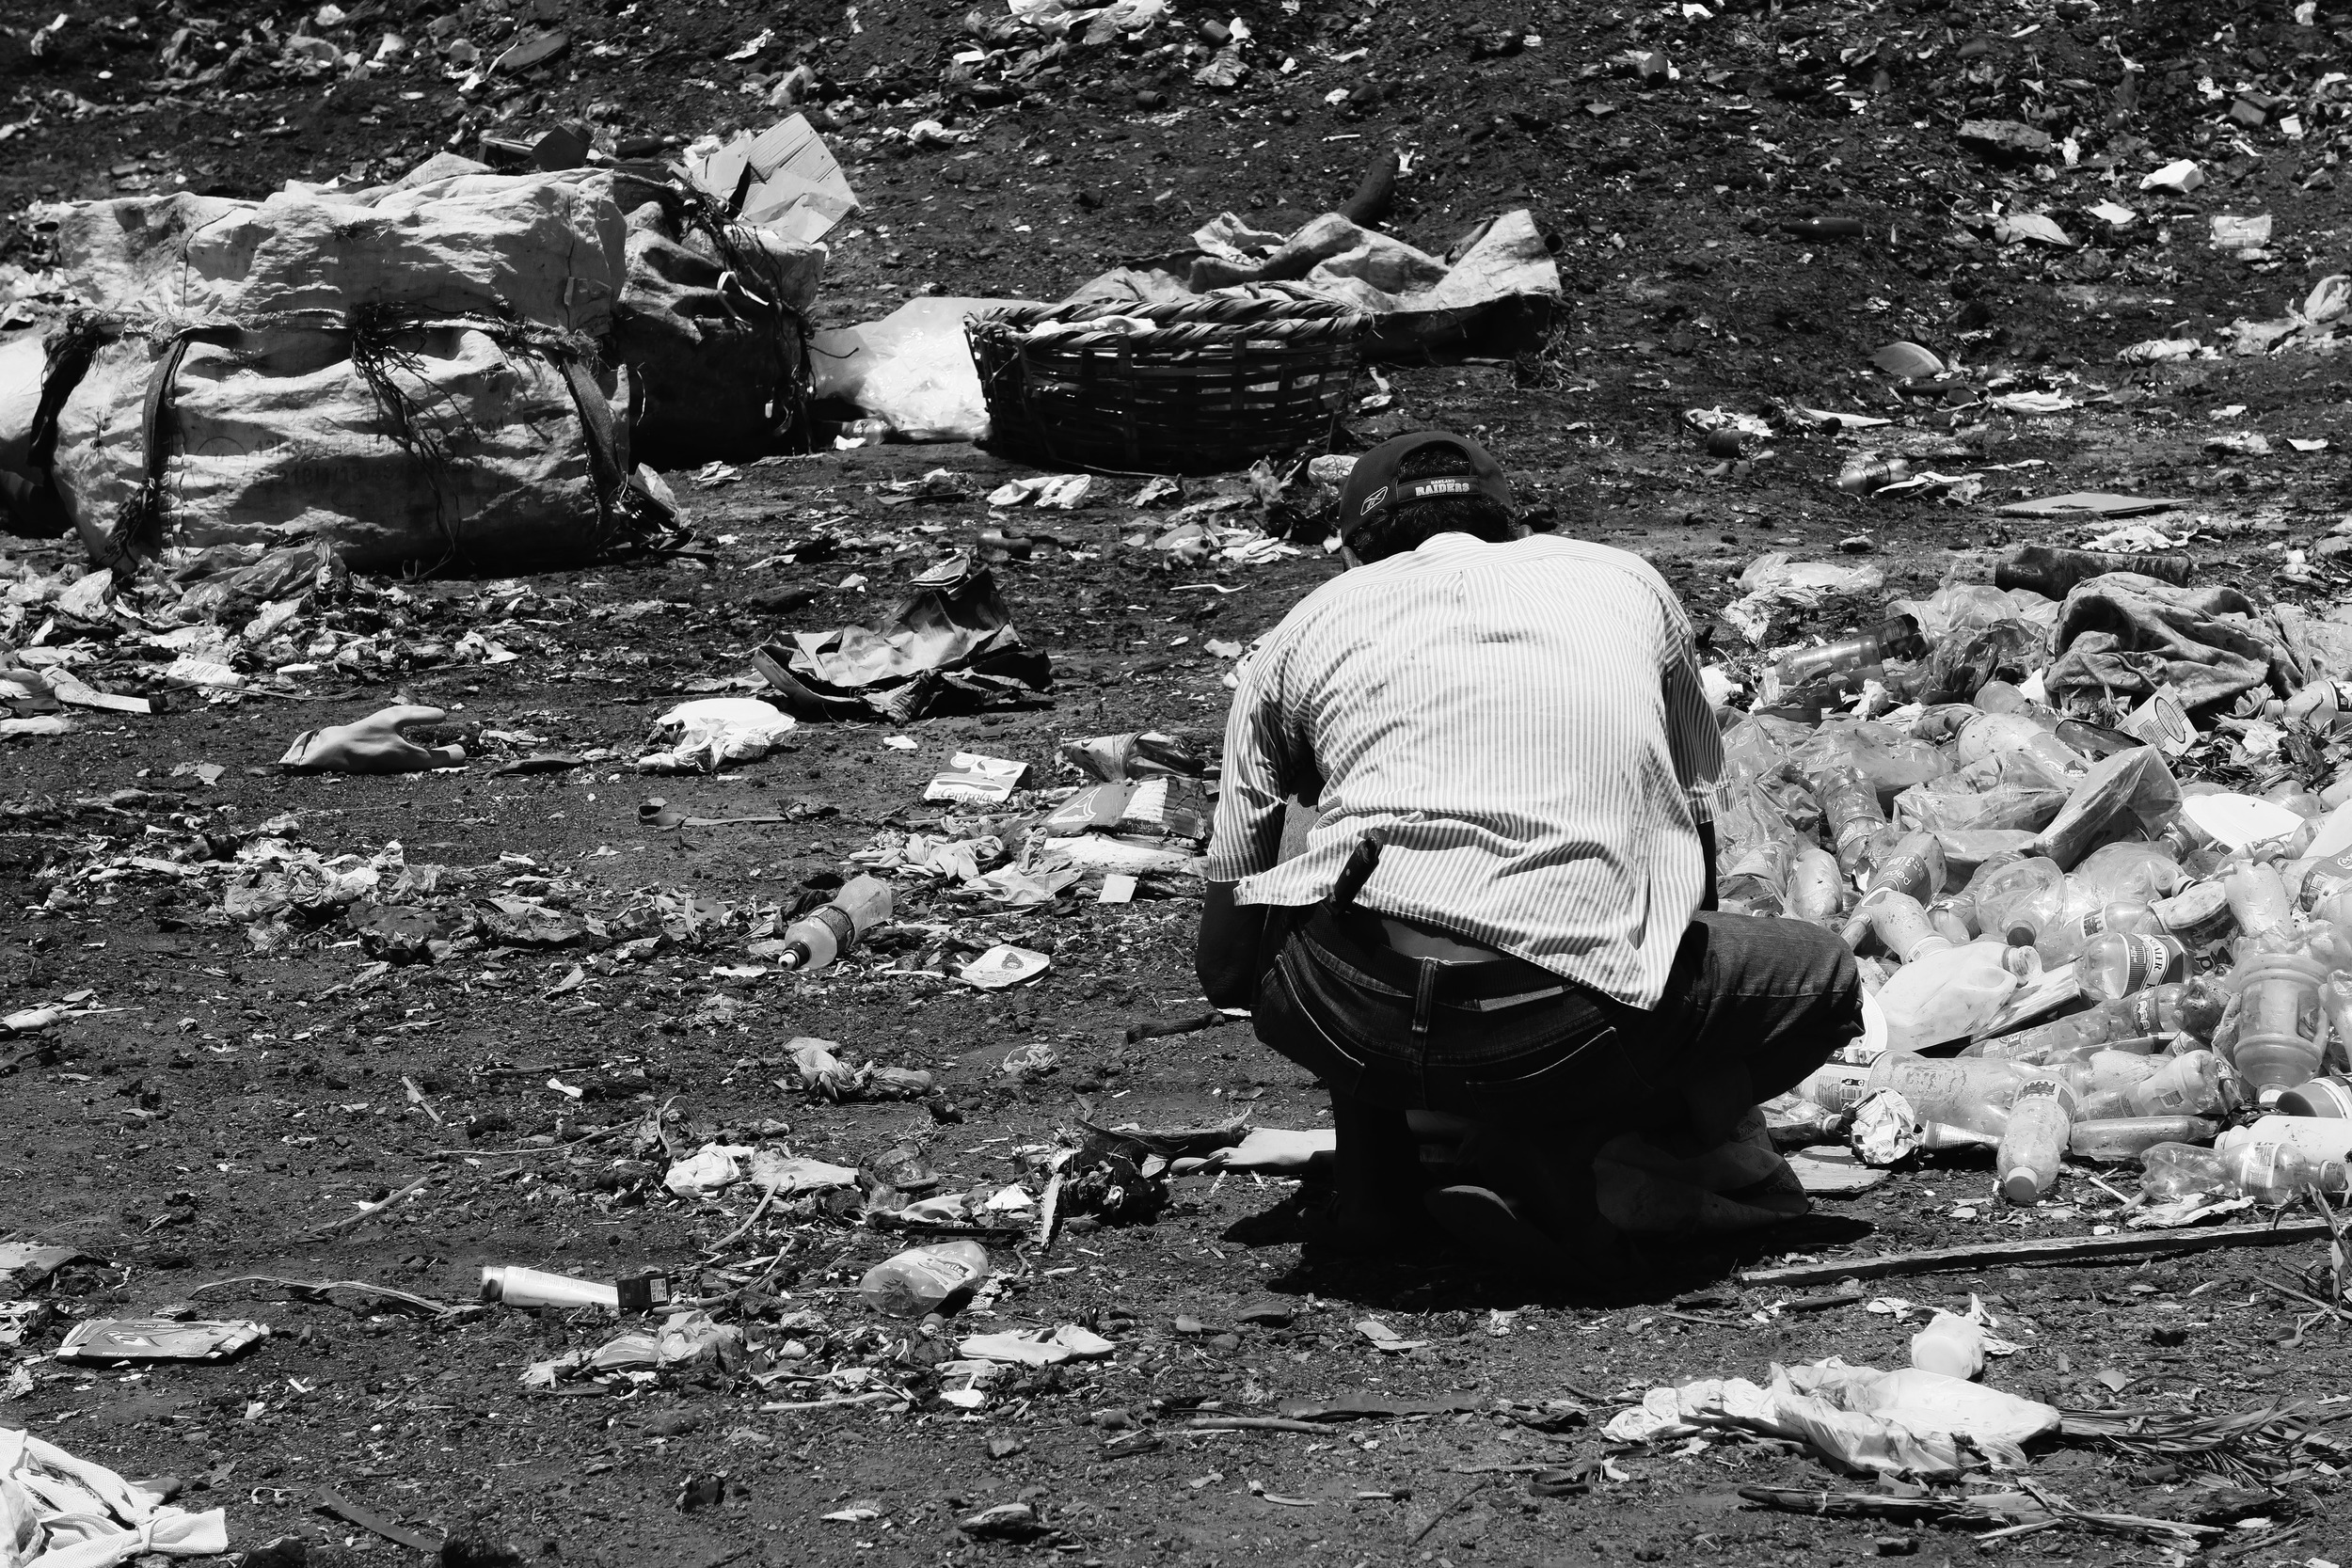 We went to the Dump on day 2. People go here to find recyclable goods to make some money. Unfortunately most of the stuff already went through the recycle process in Managua, so these people hopelessly dig through the scraps and dirt to find something.